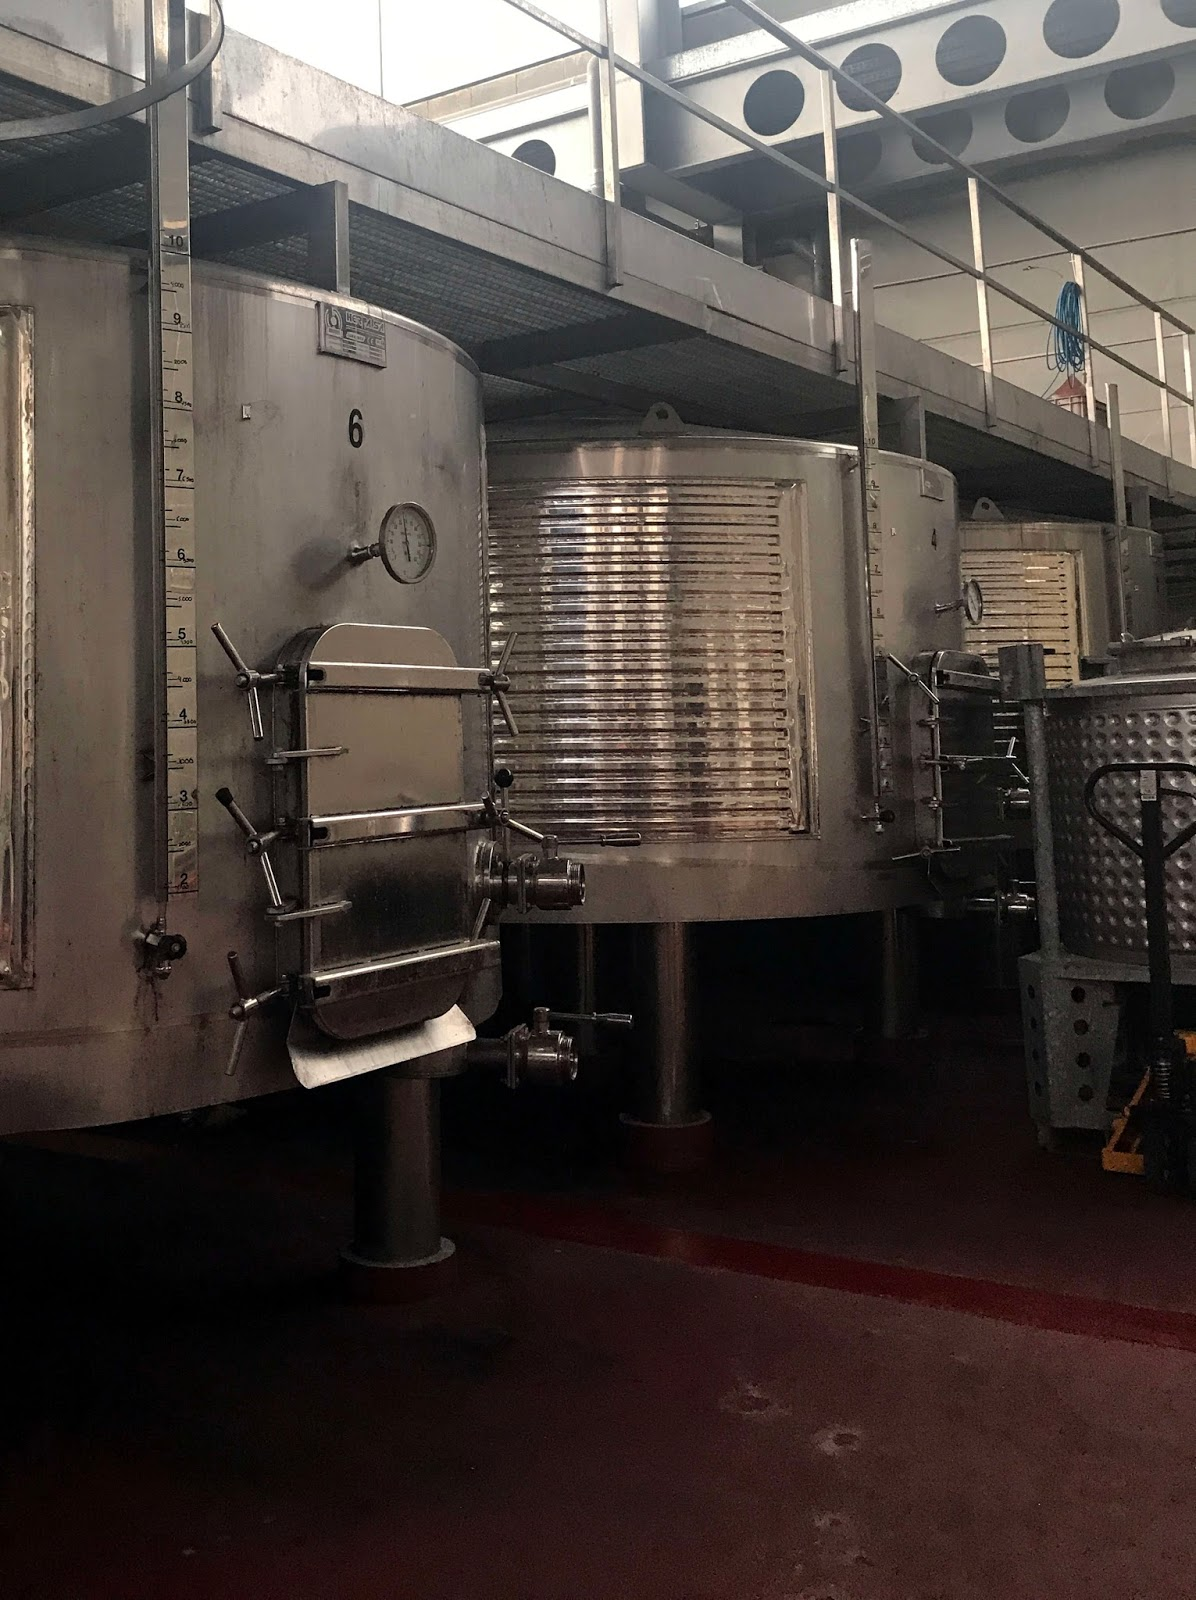 Stitch & Bear - Torres Priorat - Inside the winery